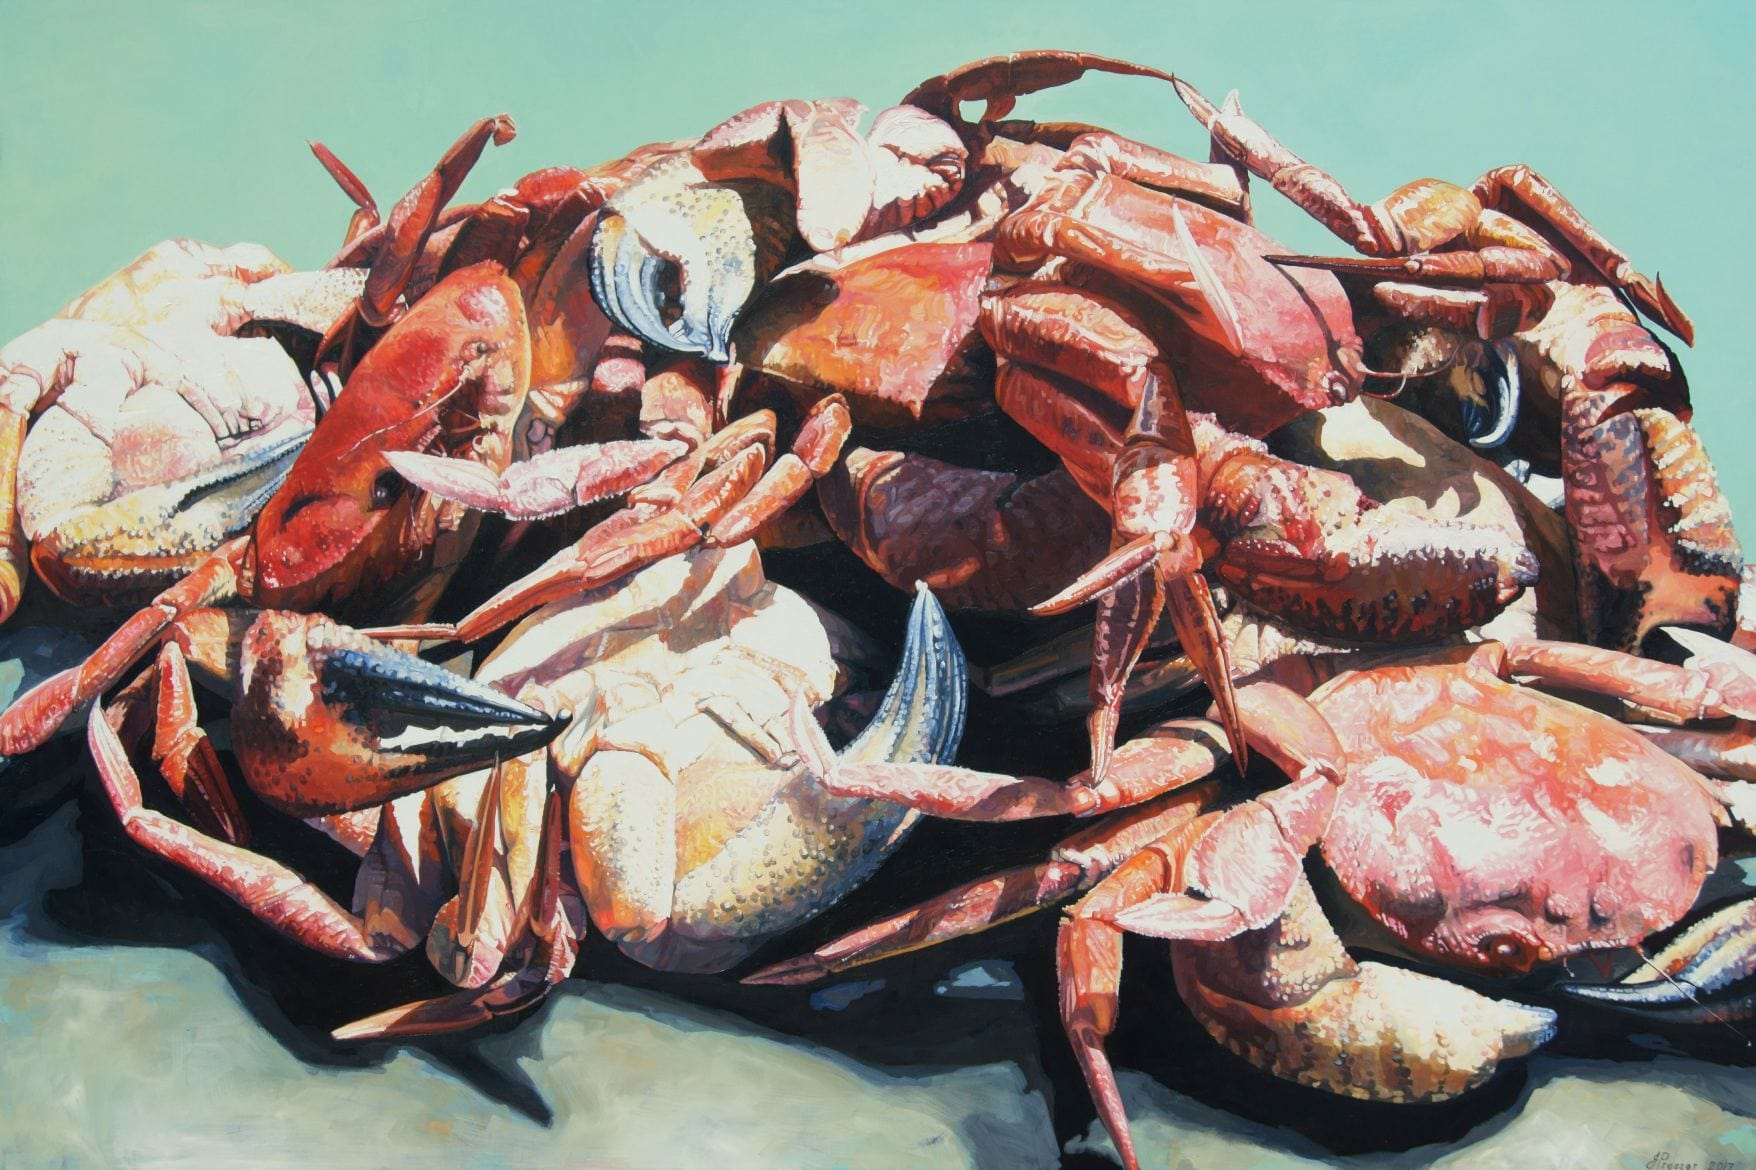 Crabs A Plenty - JAIME PROSSER ART